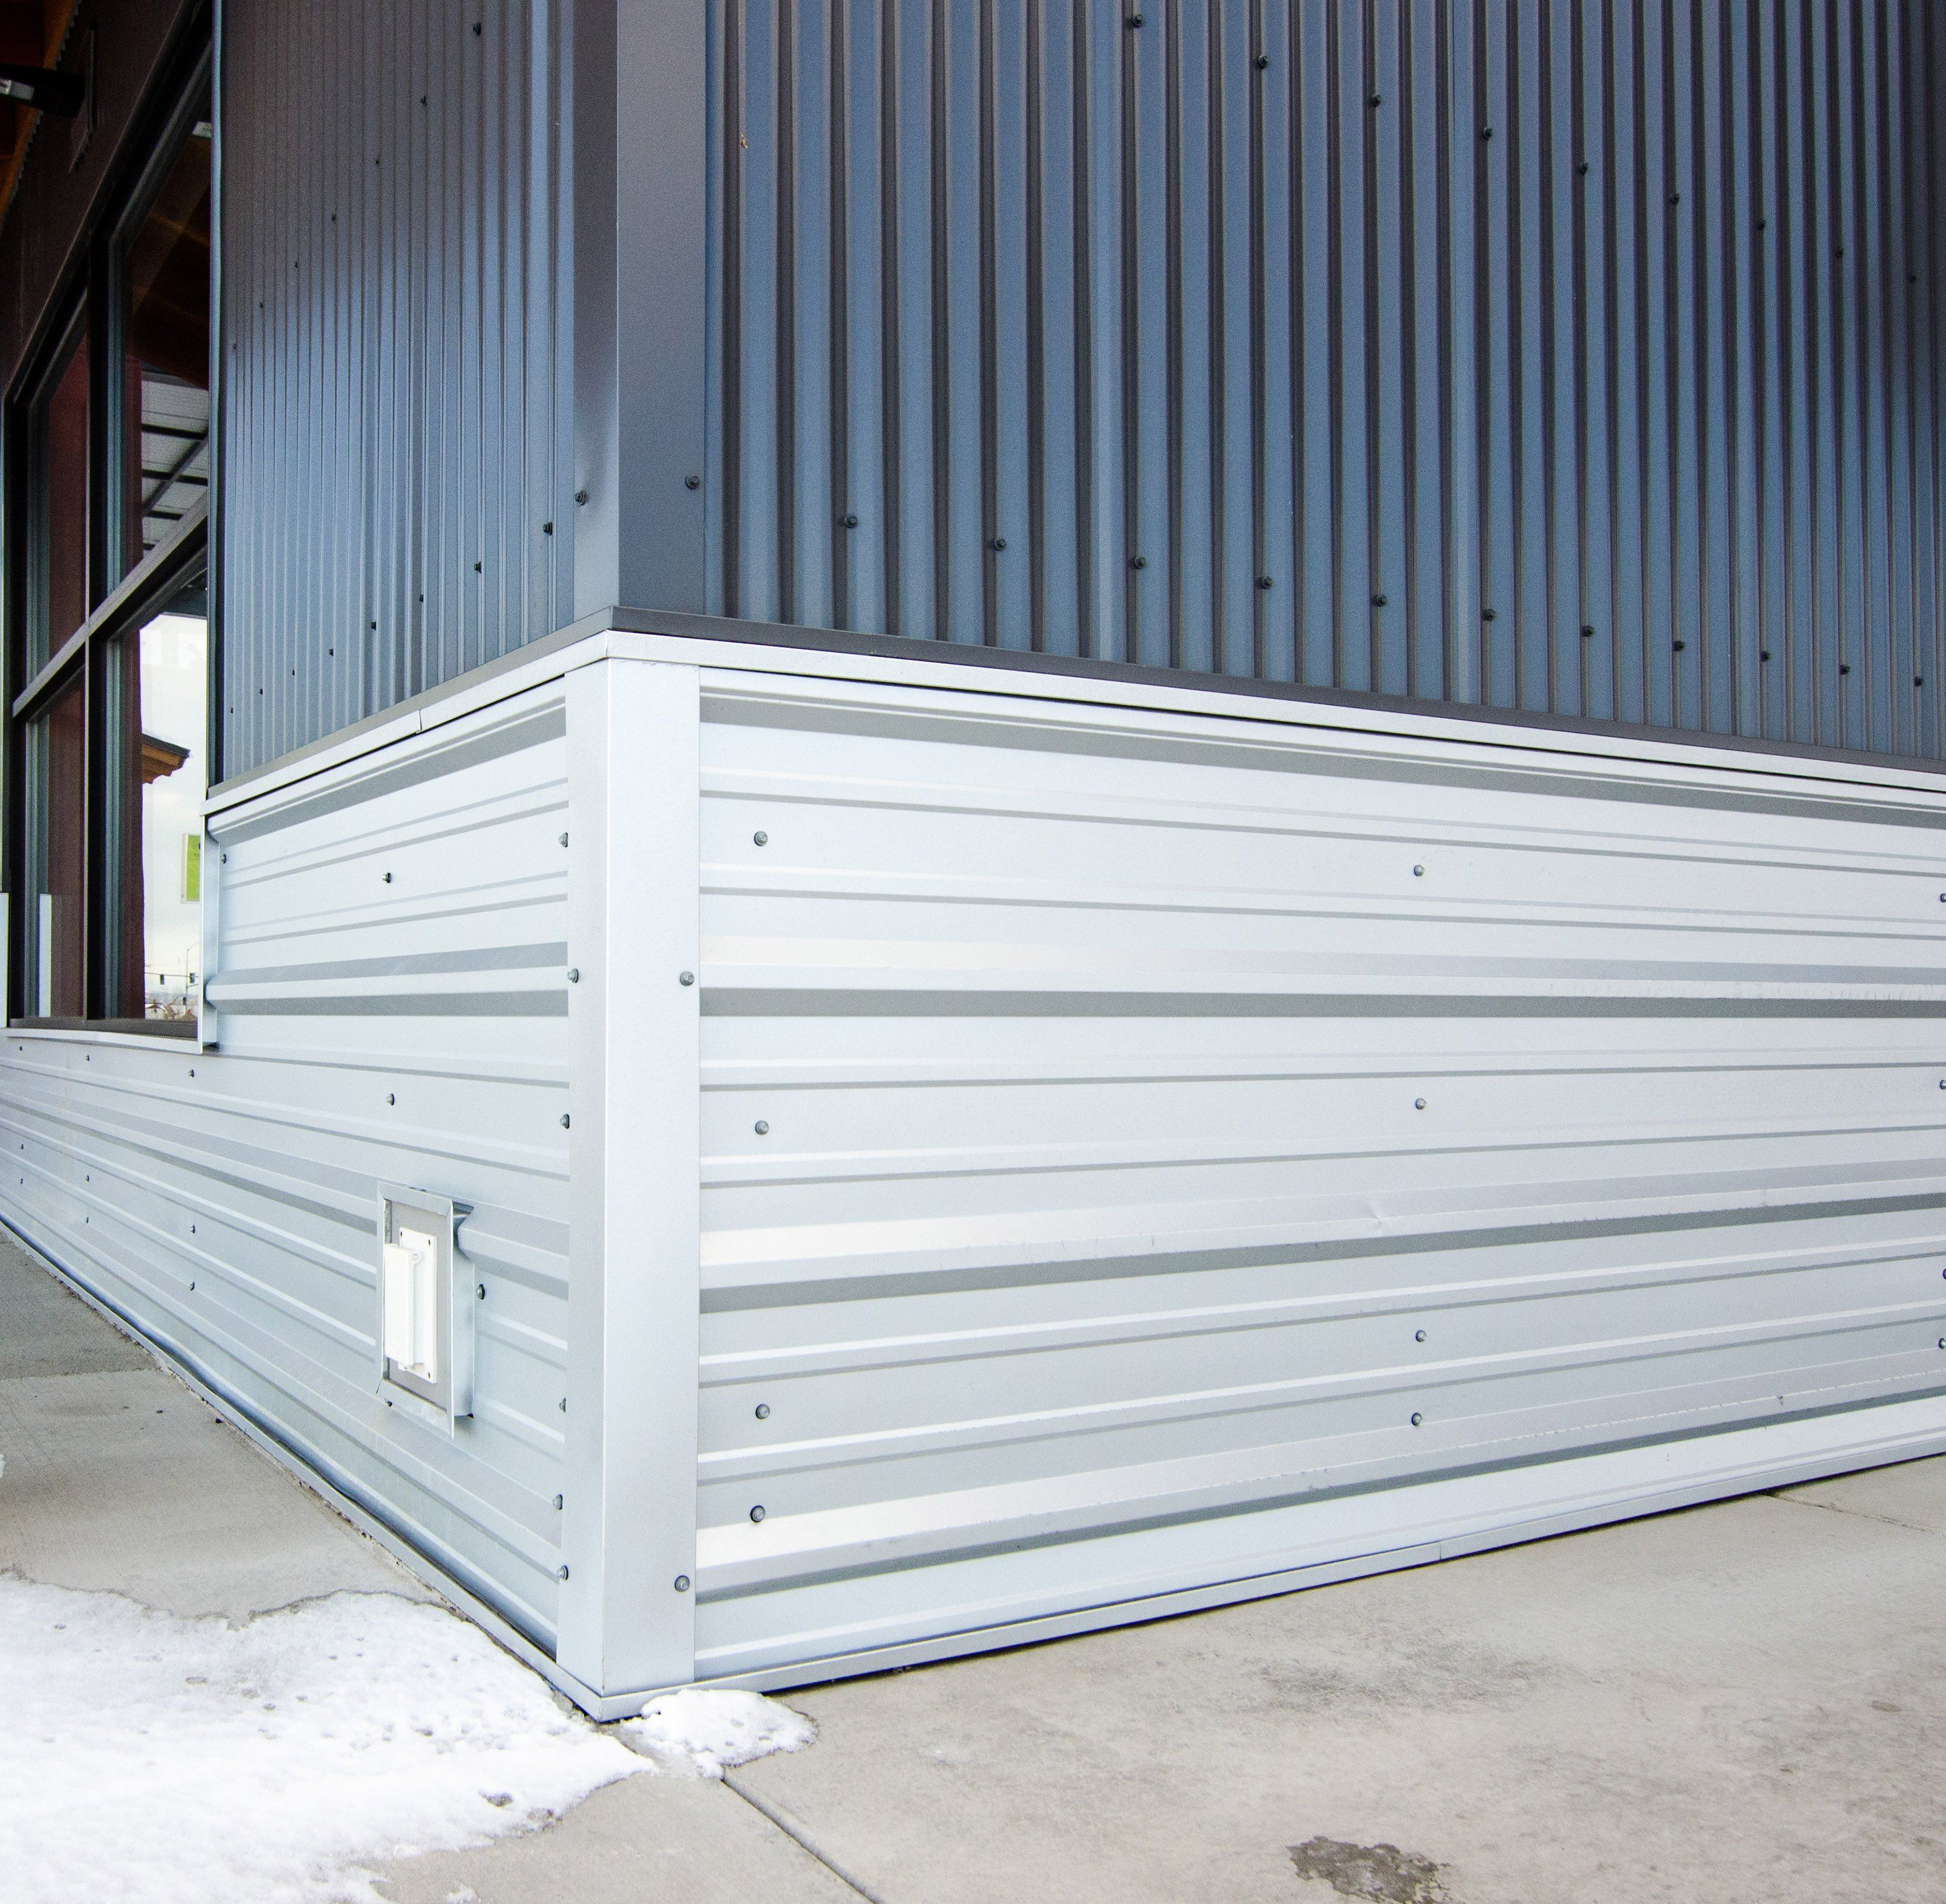 Metal Building Examples Residential Commercial Metal Buildings Metal Building Designs Corrugated Metal Siding